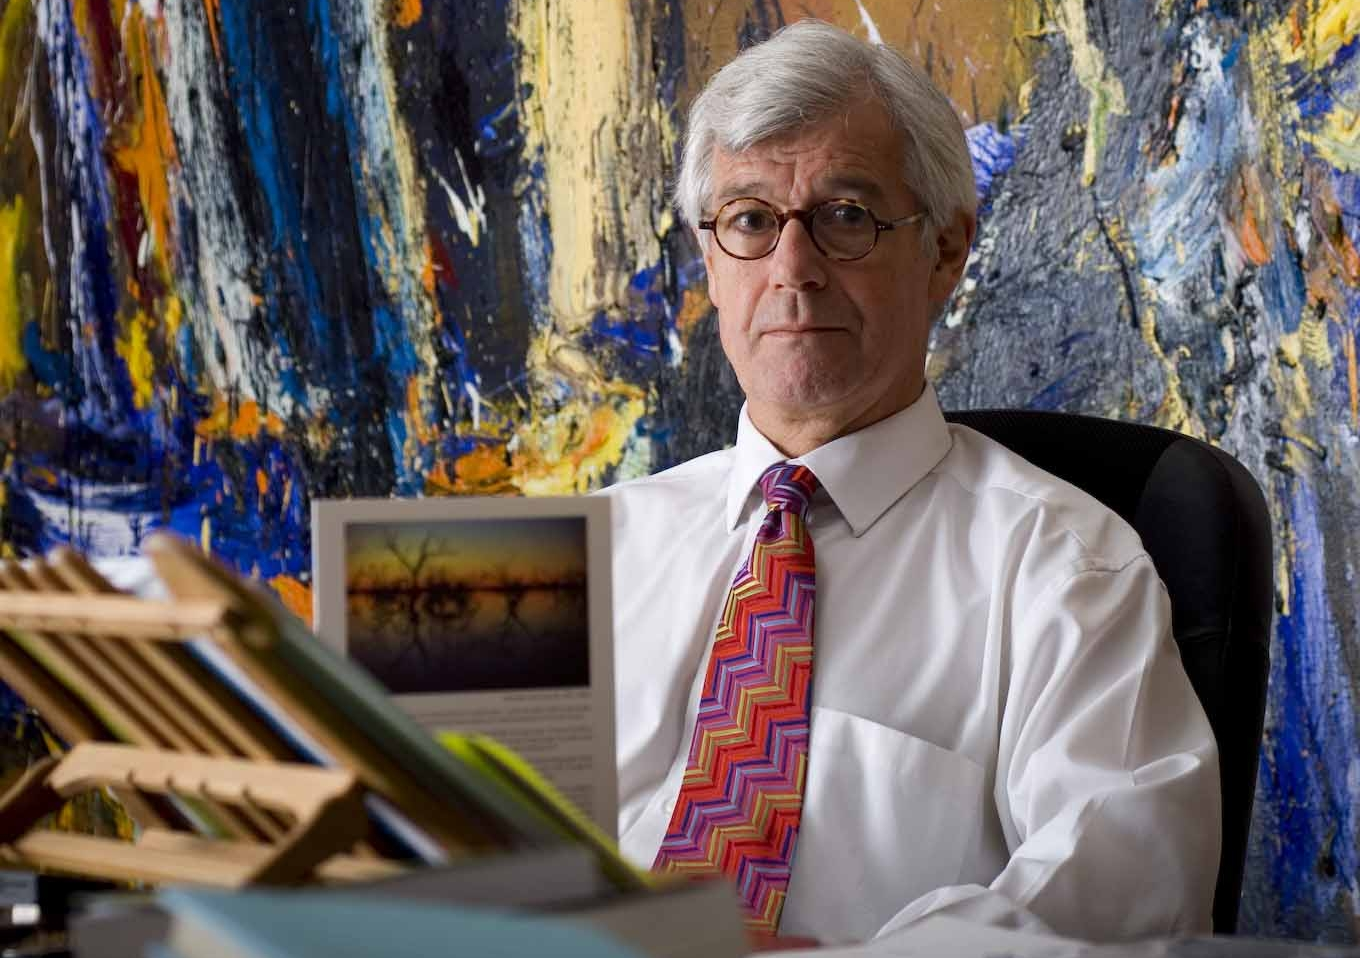 Barrister and human rights advocate Julian Burnside